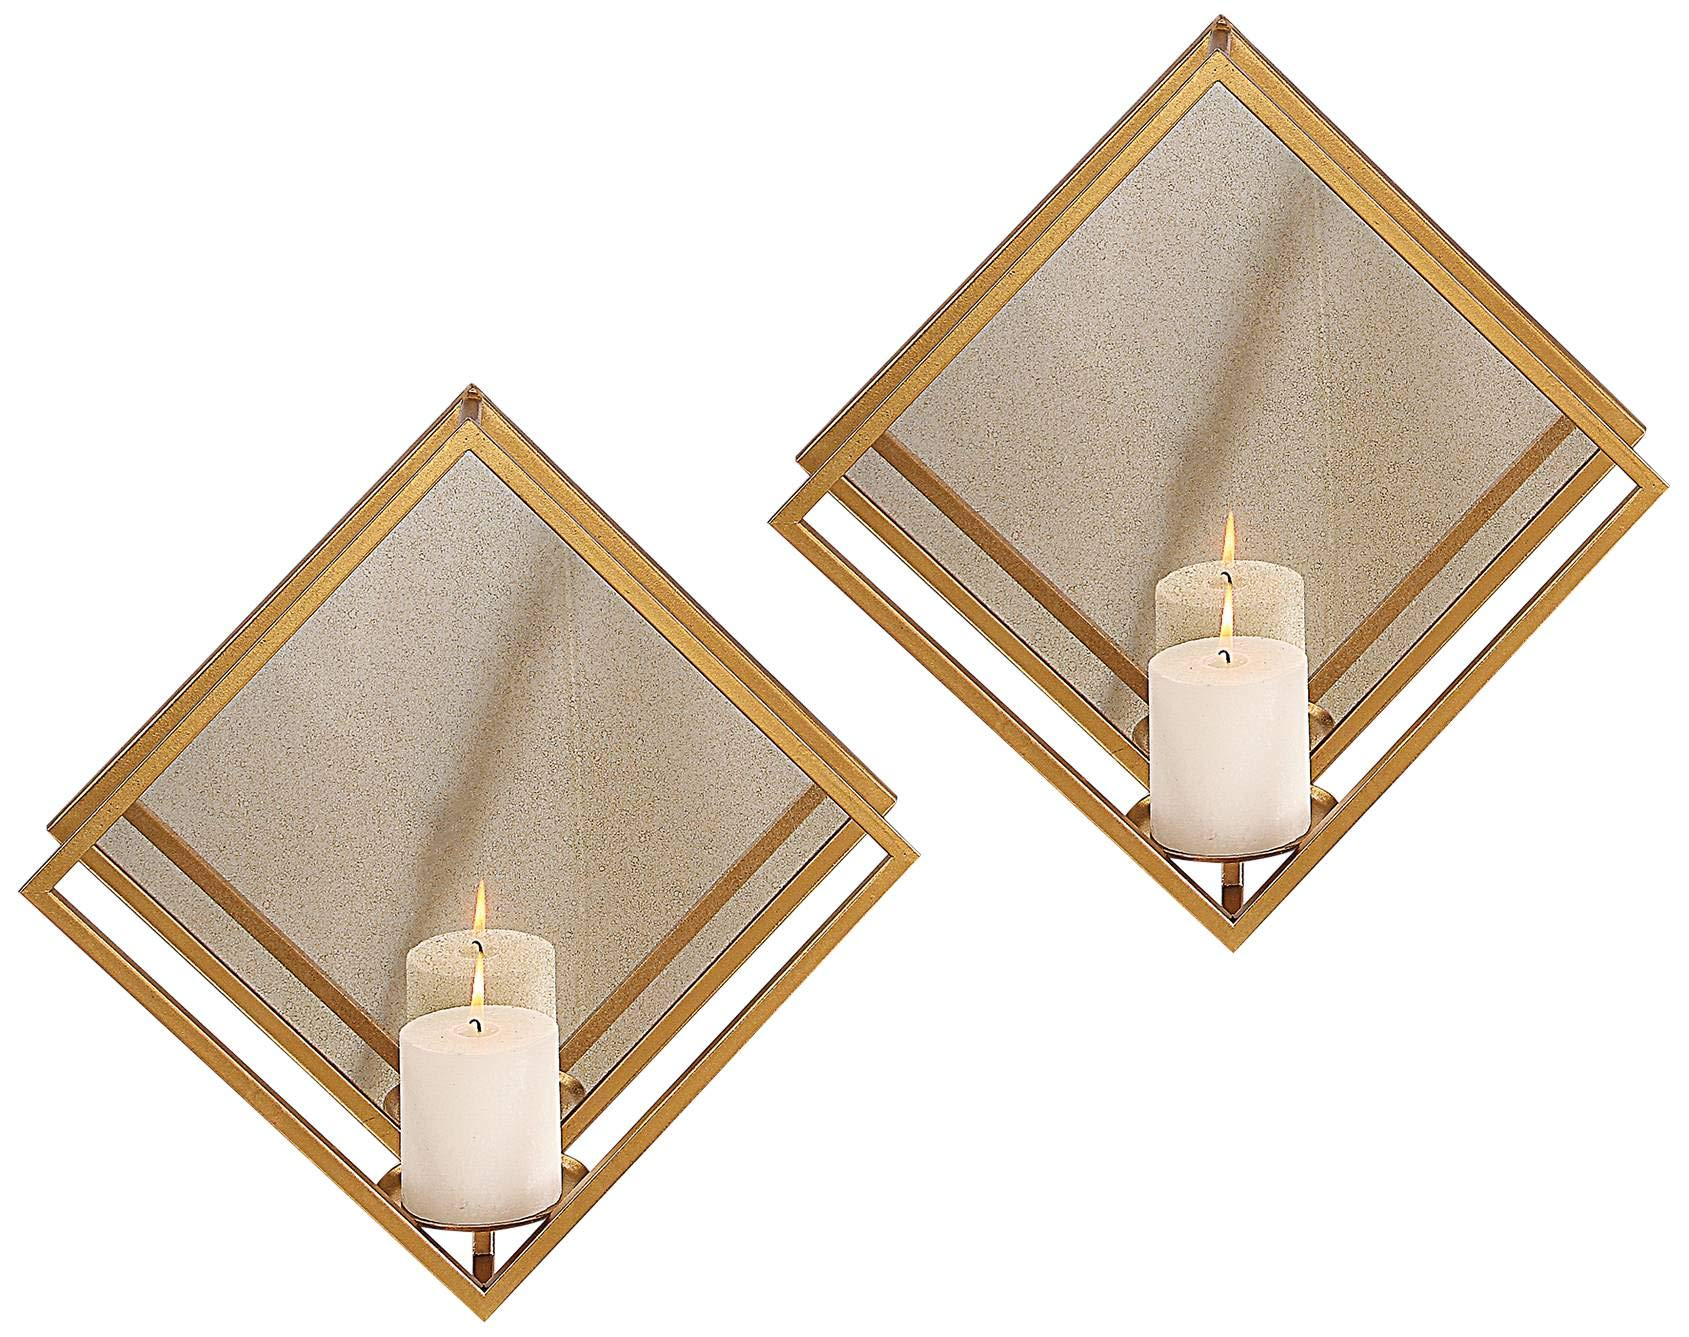 Uttermost Zulia 16'' High Candle Wall Sconce Set of 2